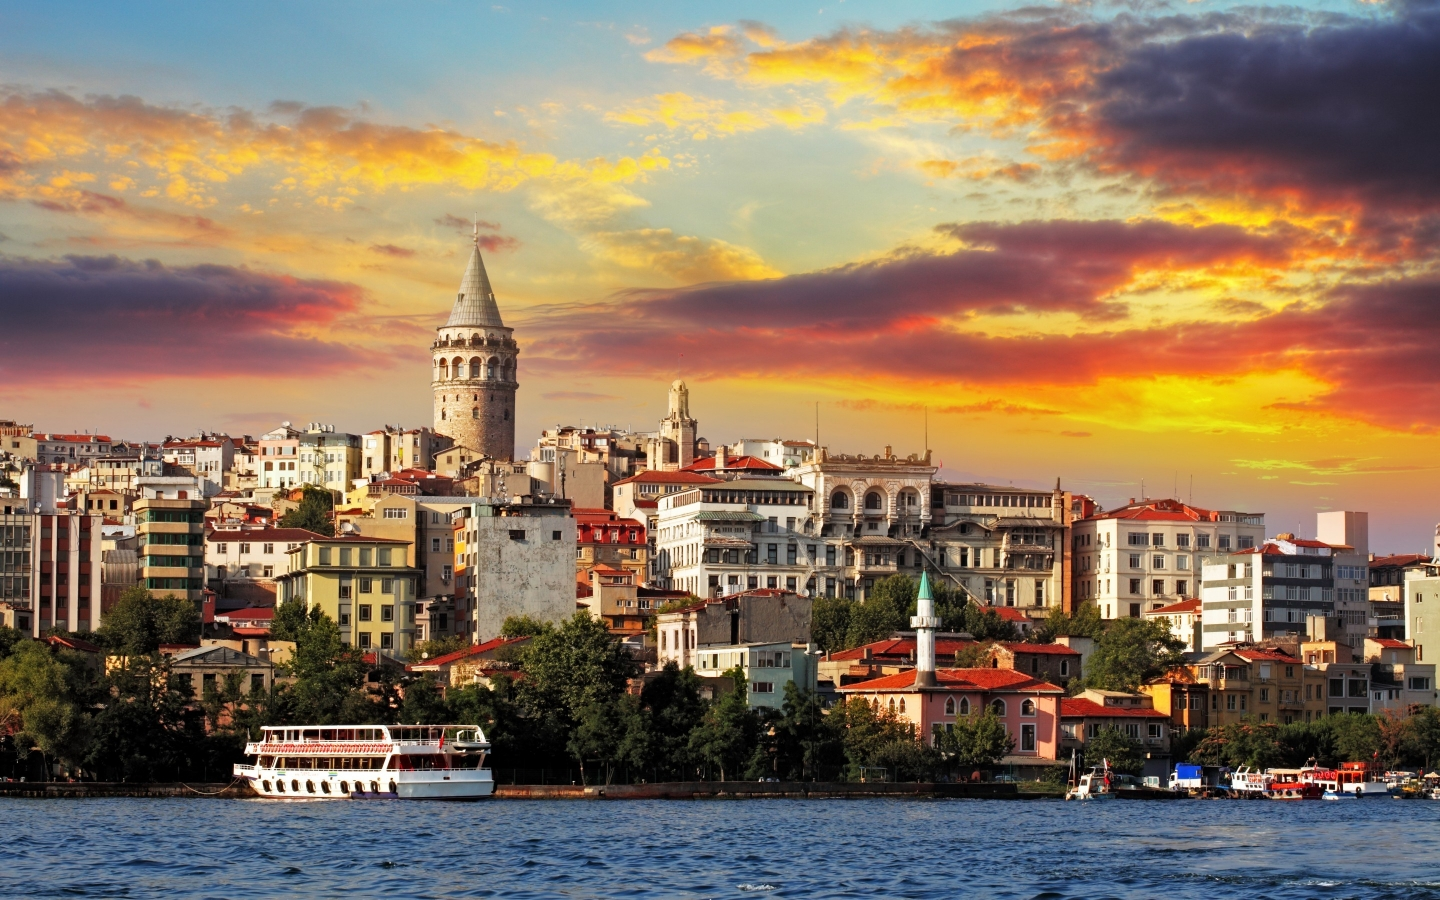 Sunset in Istambul for 1440 x 900 widescreen resolution